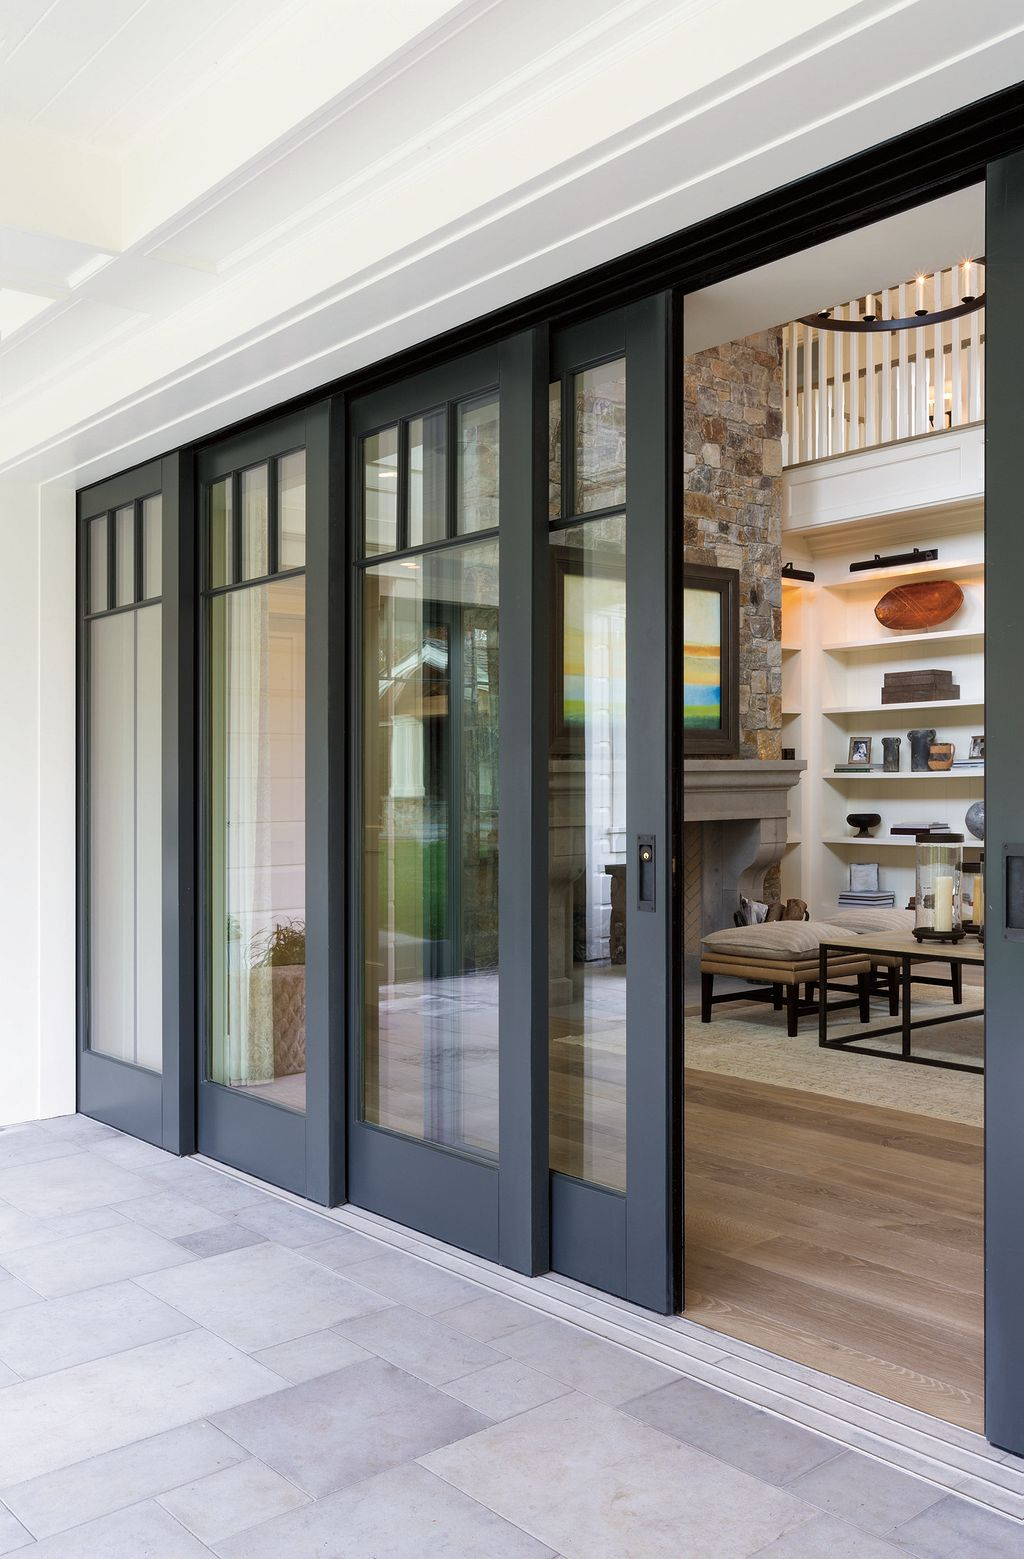 10 Cool Ideas To Increase Your Patio This Summer Interior Sliding Glass Doors Interior Barn Doors Slider Door